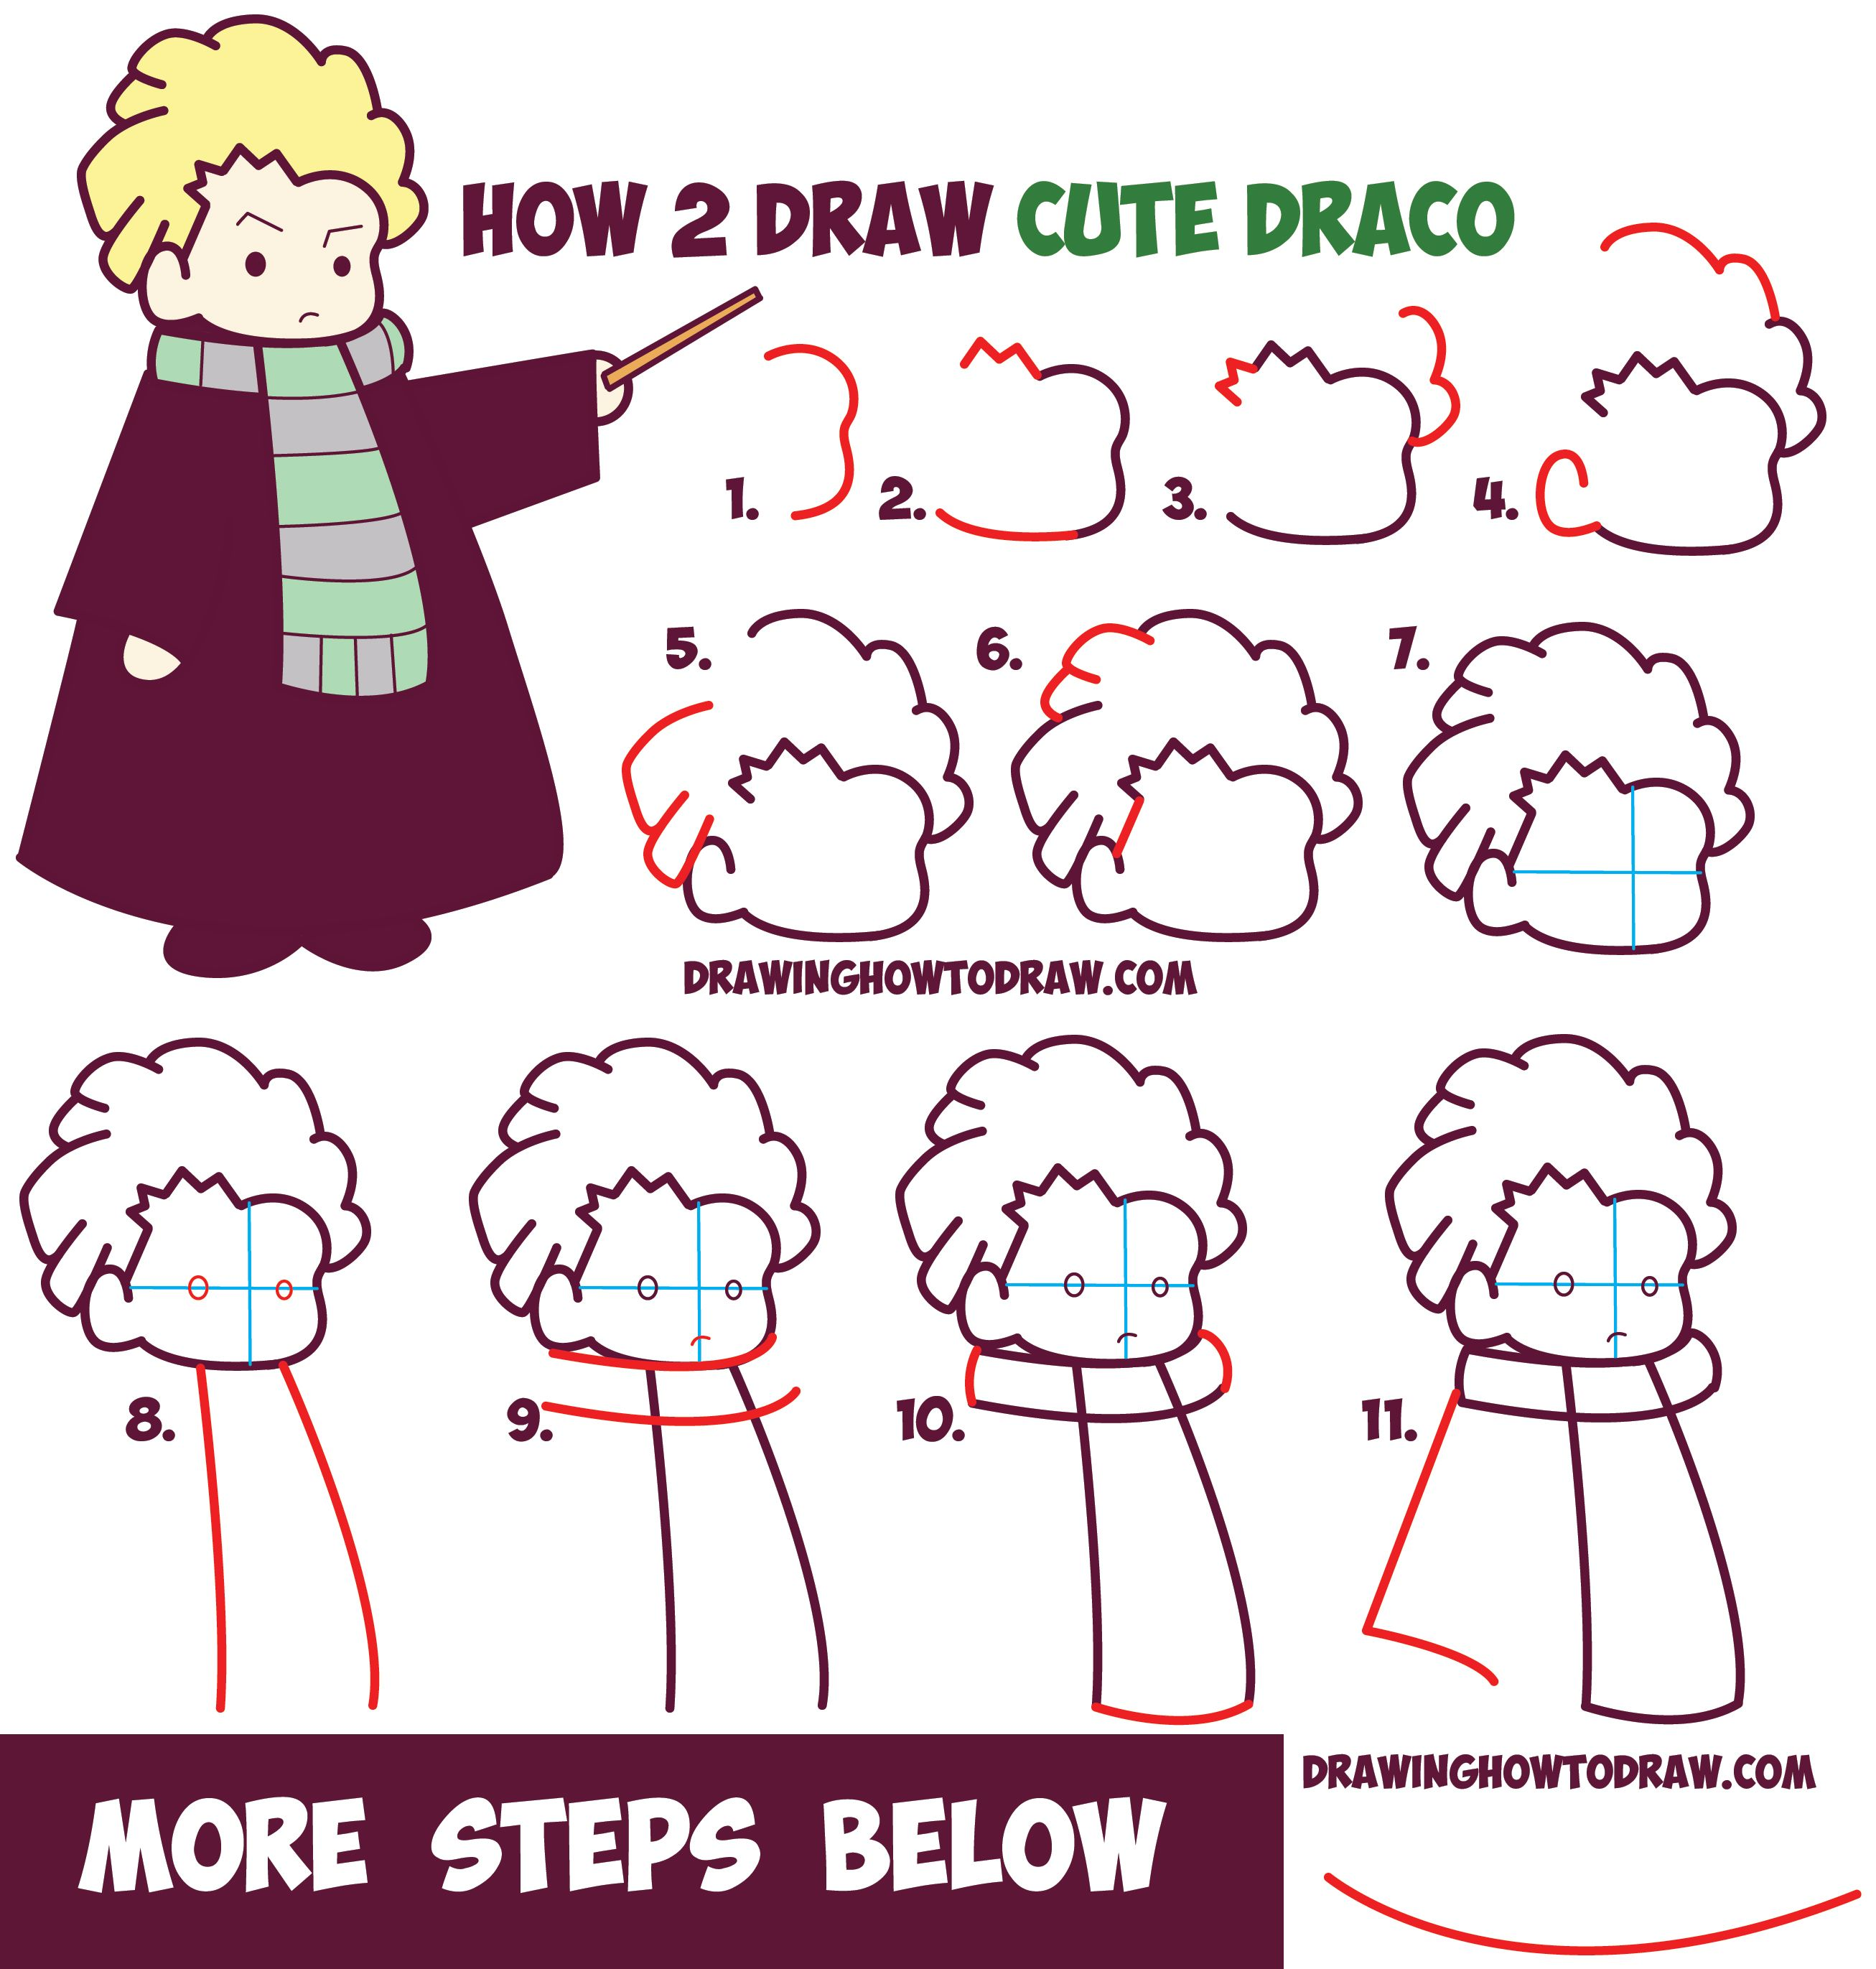 How To Draw Cute Draco Malfoy From Harry Potter Chibi